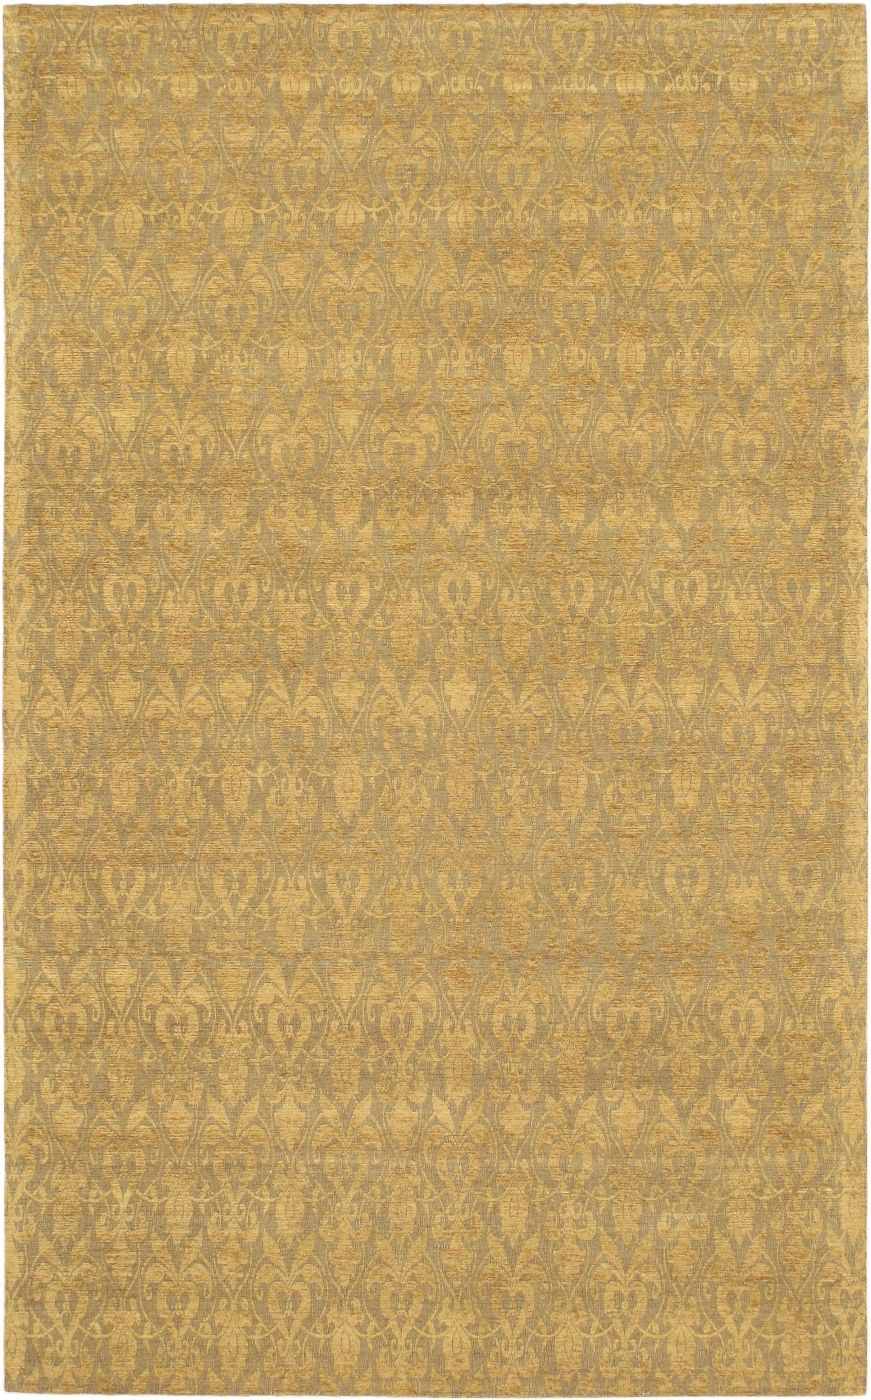 ecarpet gallery fab dhurrie transitional area rug collection